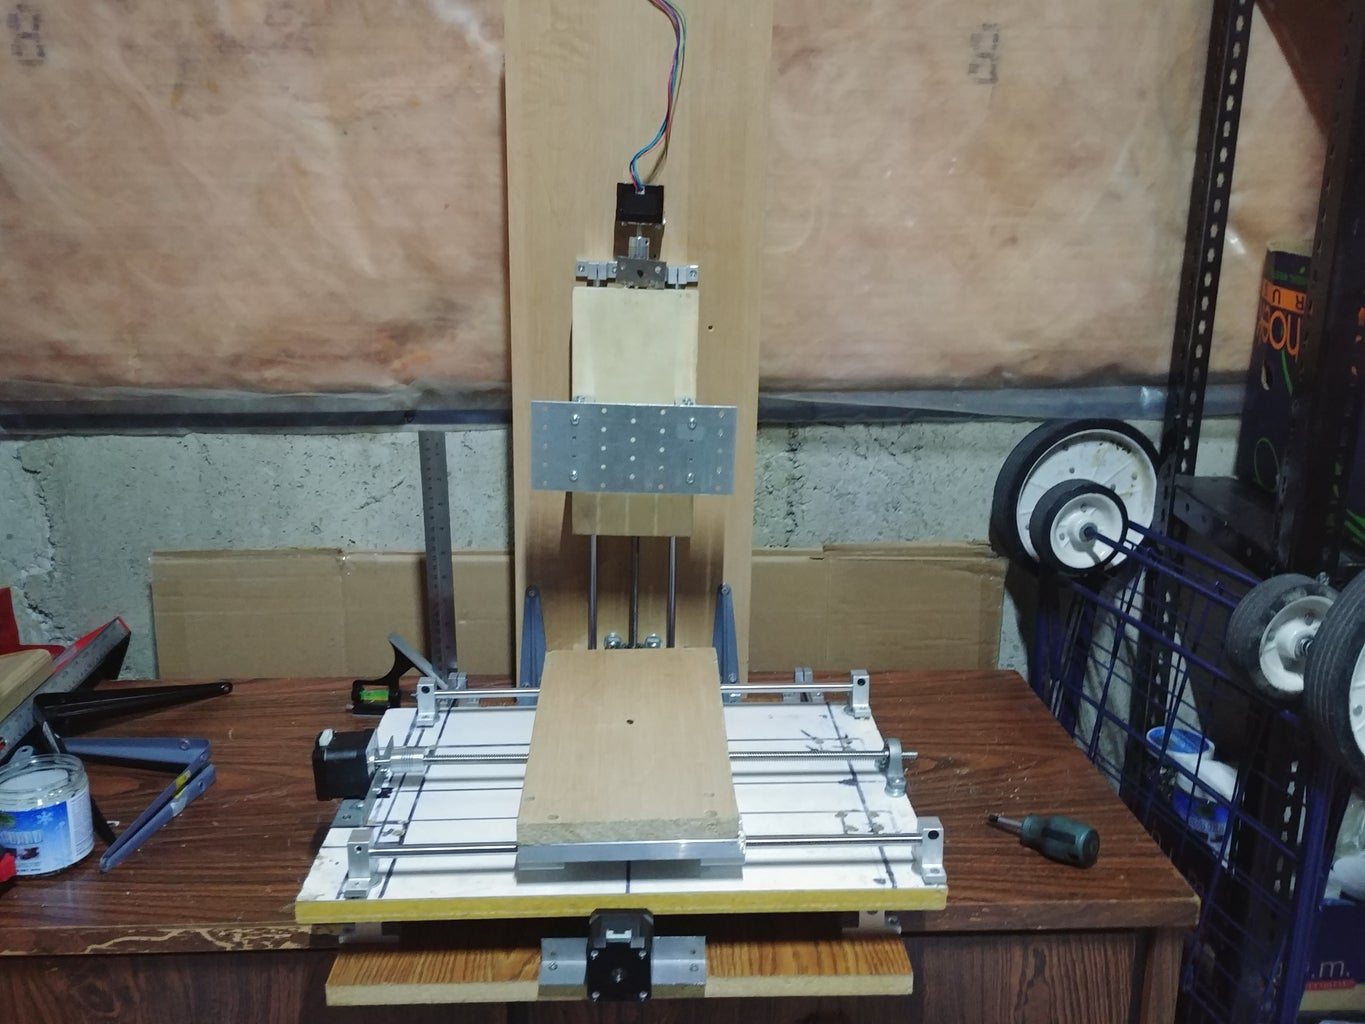 Making the Z-axis